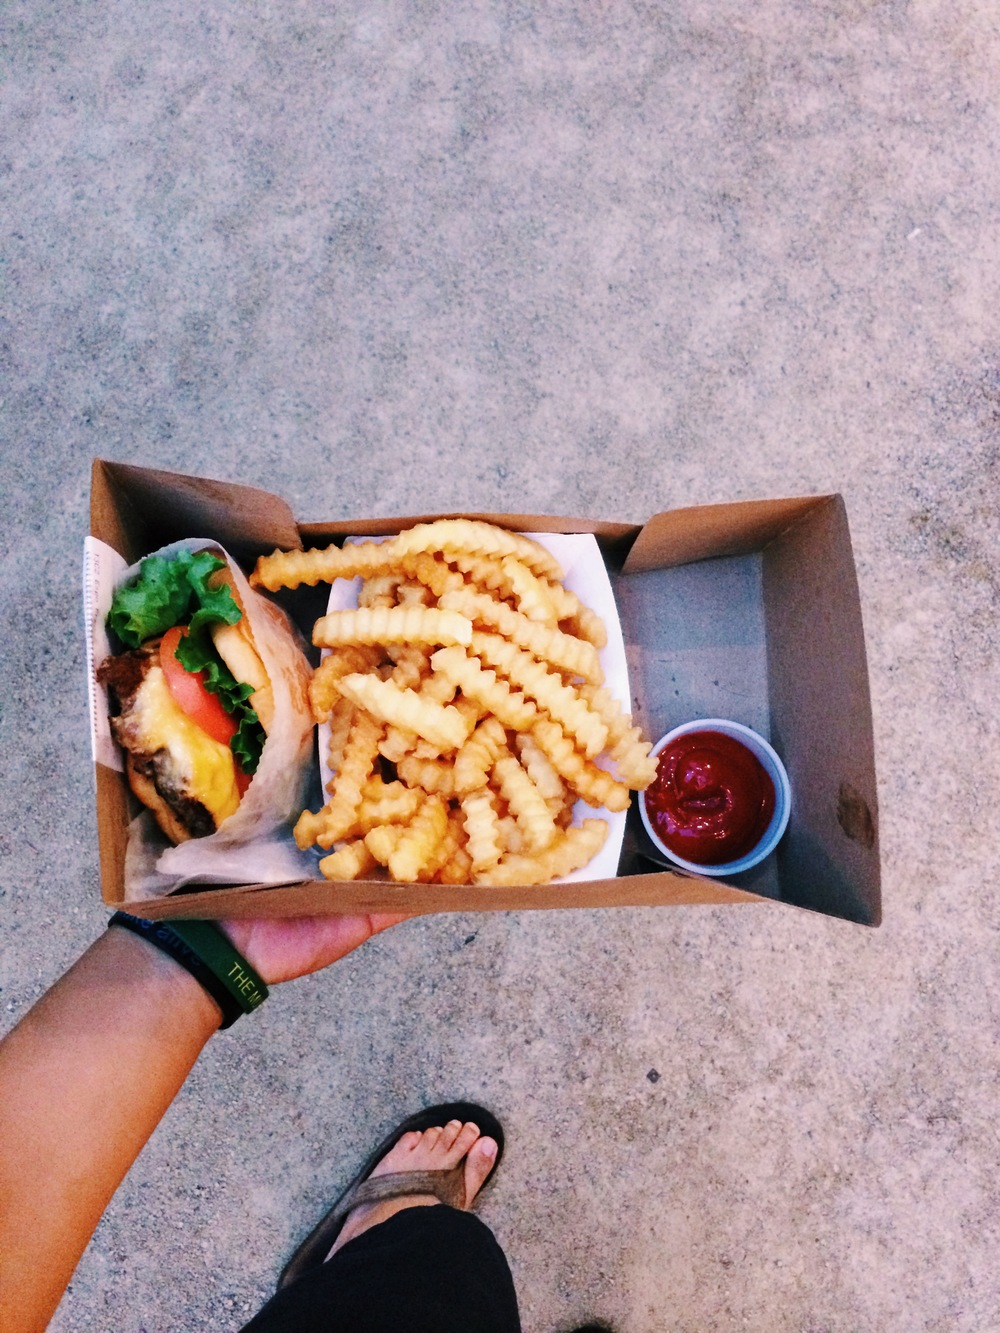 New York wouldn't be complete with a Shake Shack visit